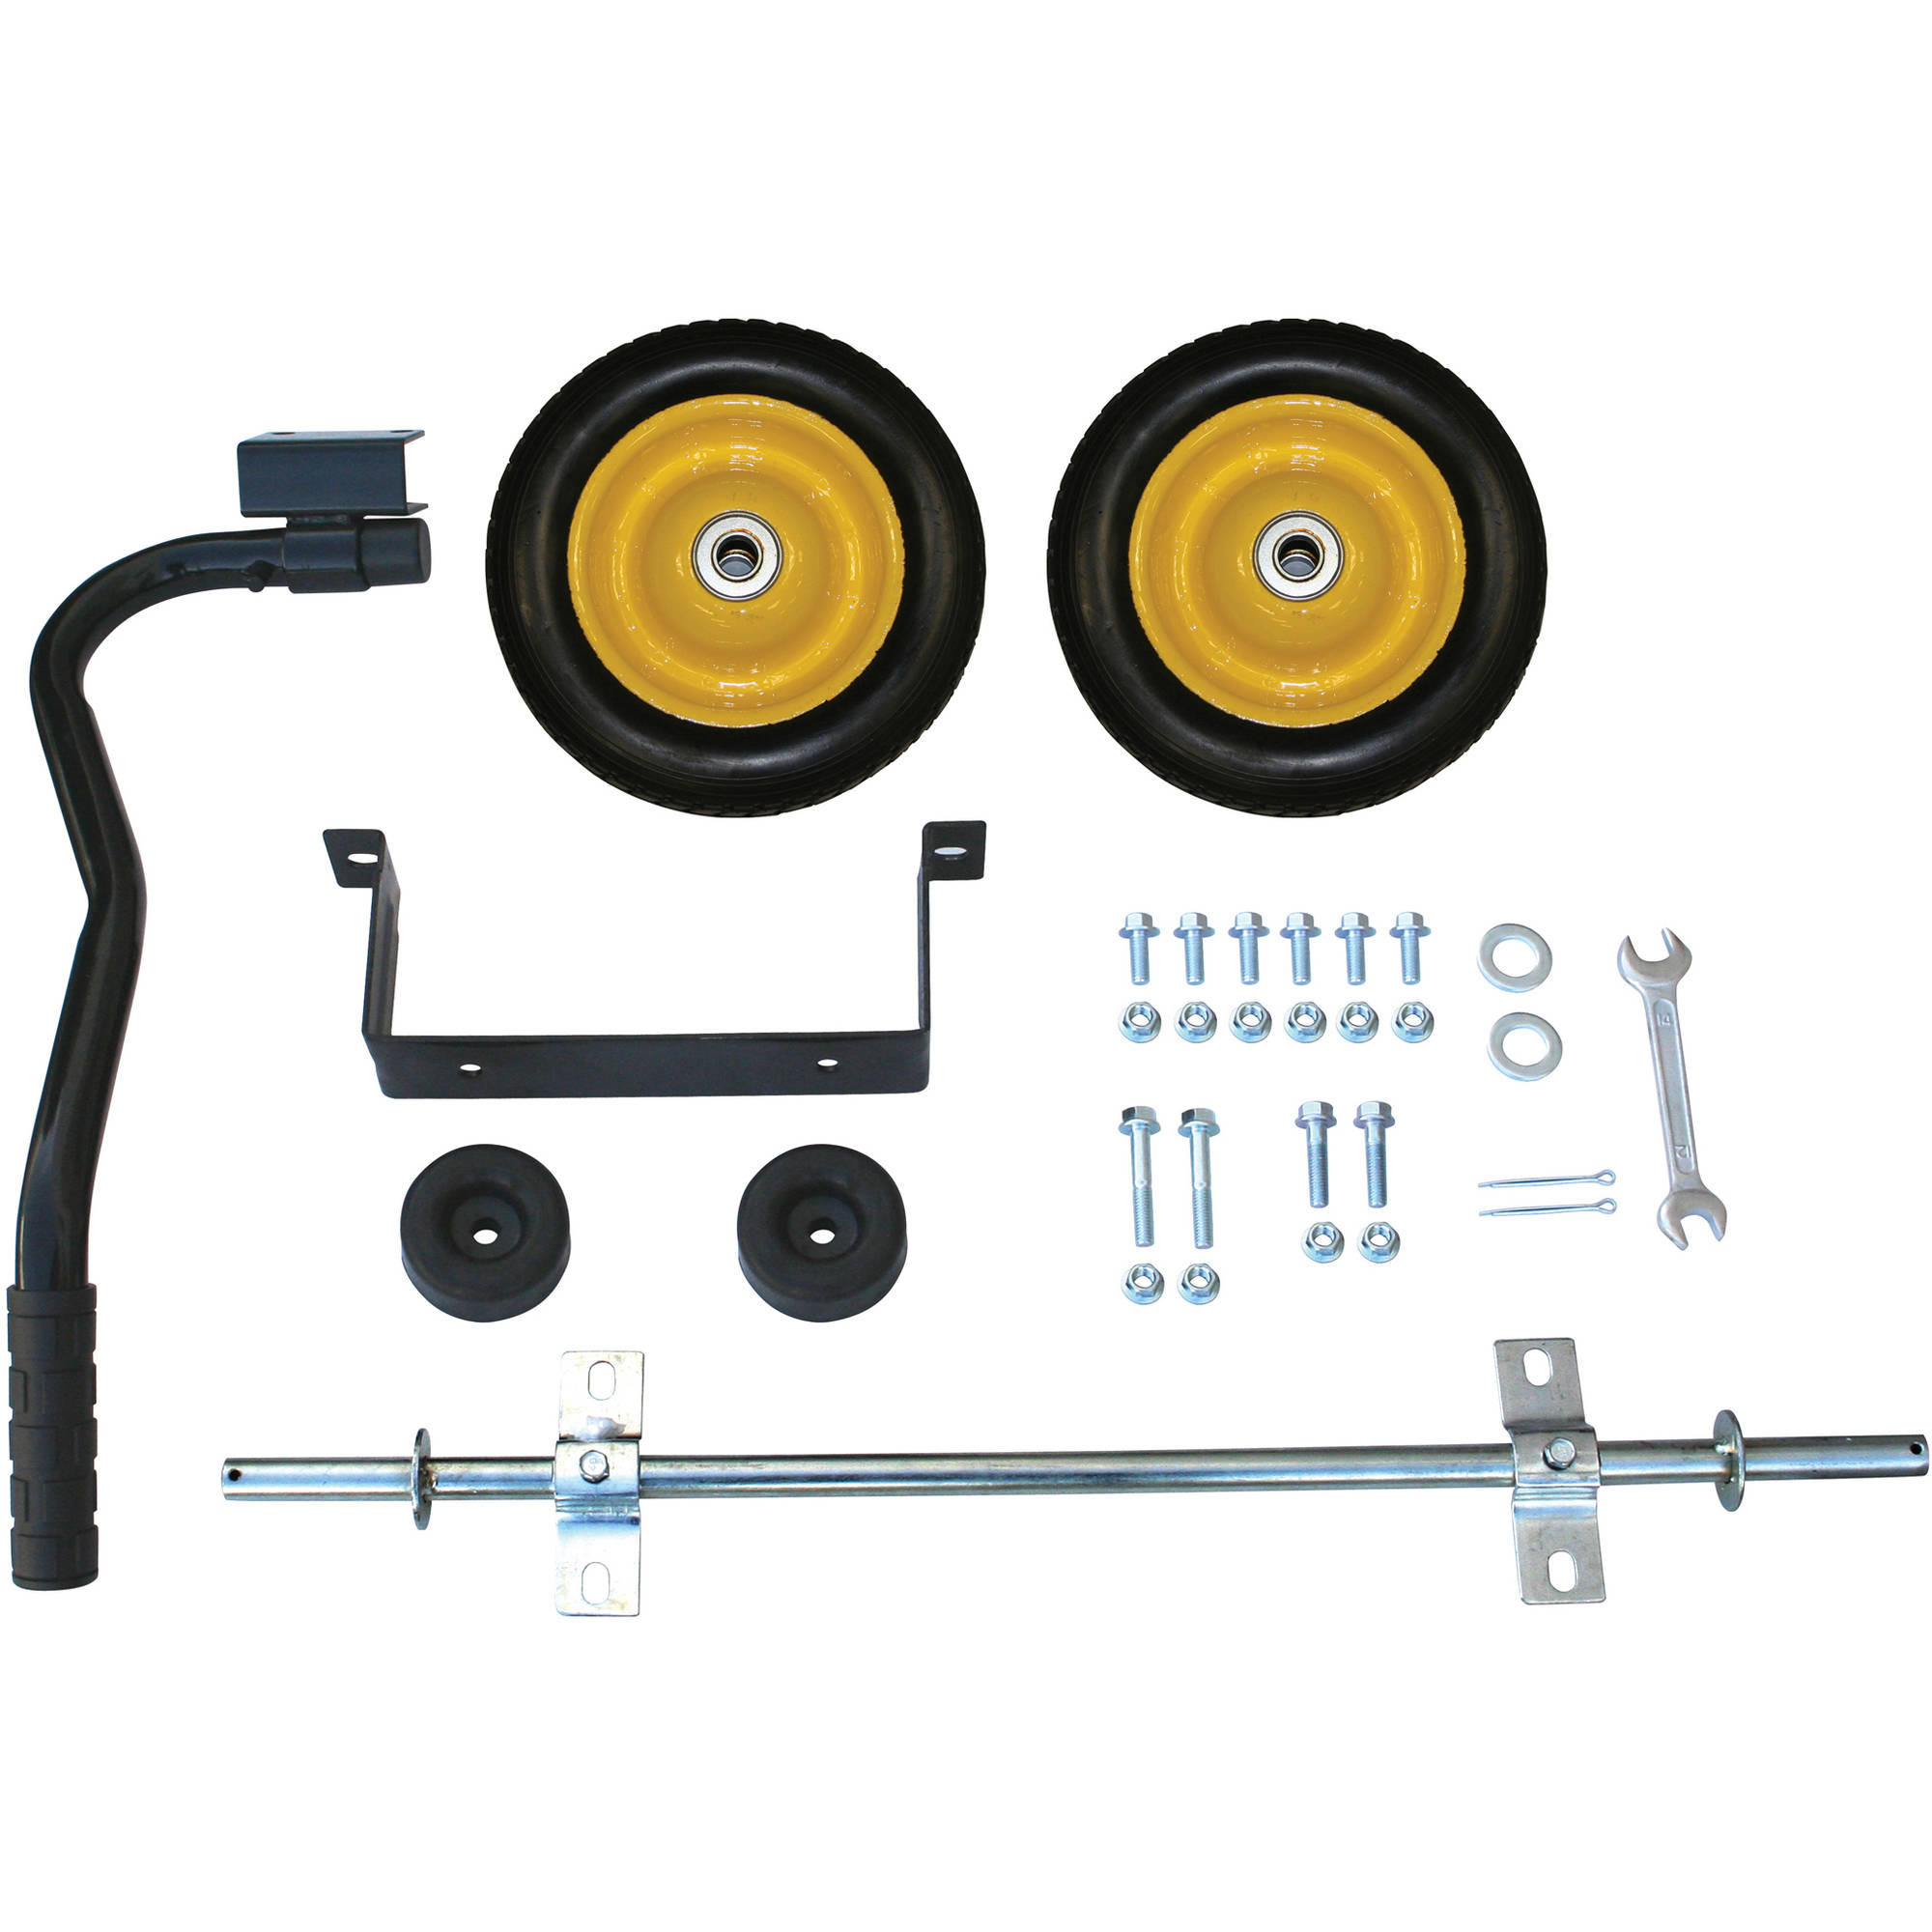 Champion Power Equipment Model C40065 Wheel Kit for Any Champion 4,000 Watt Generators